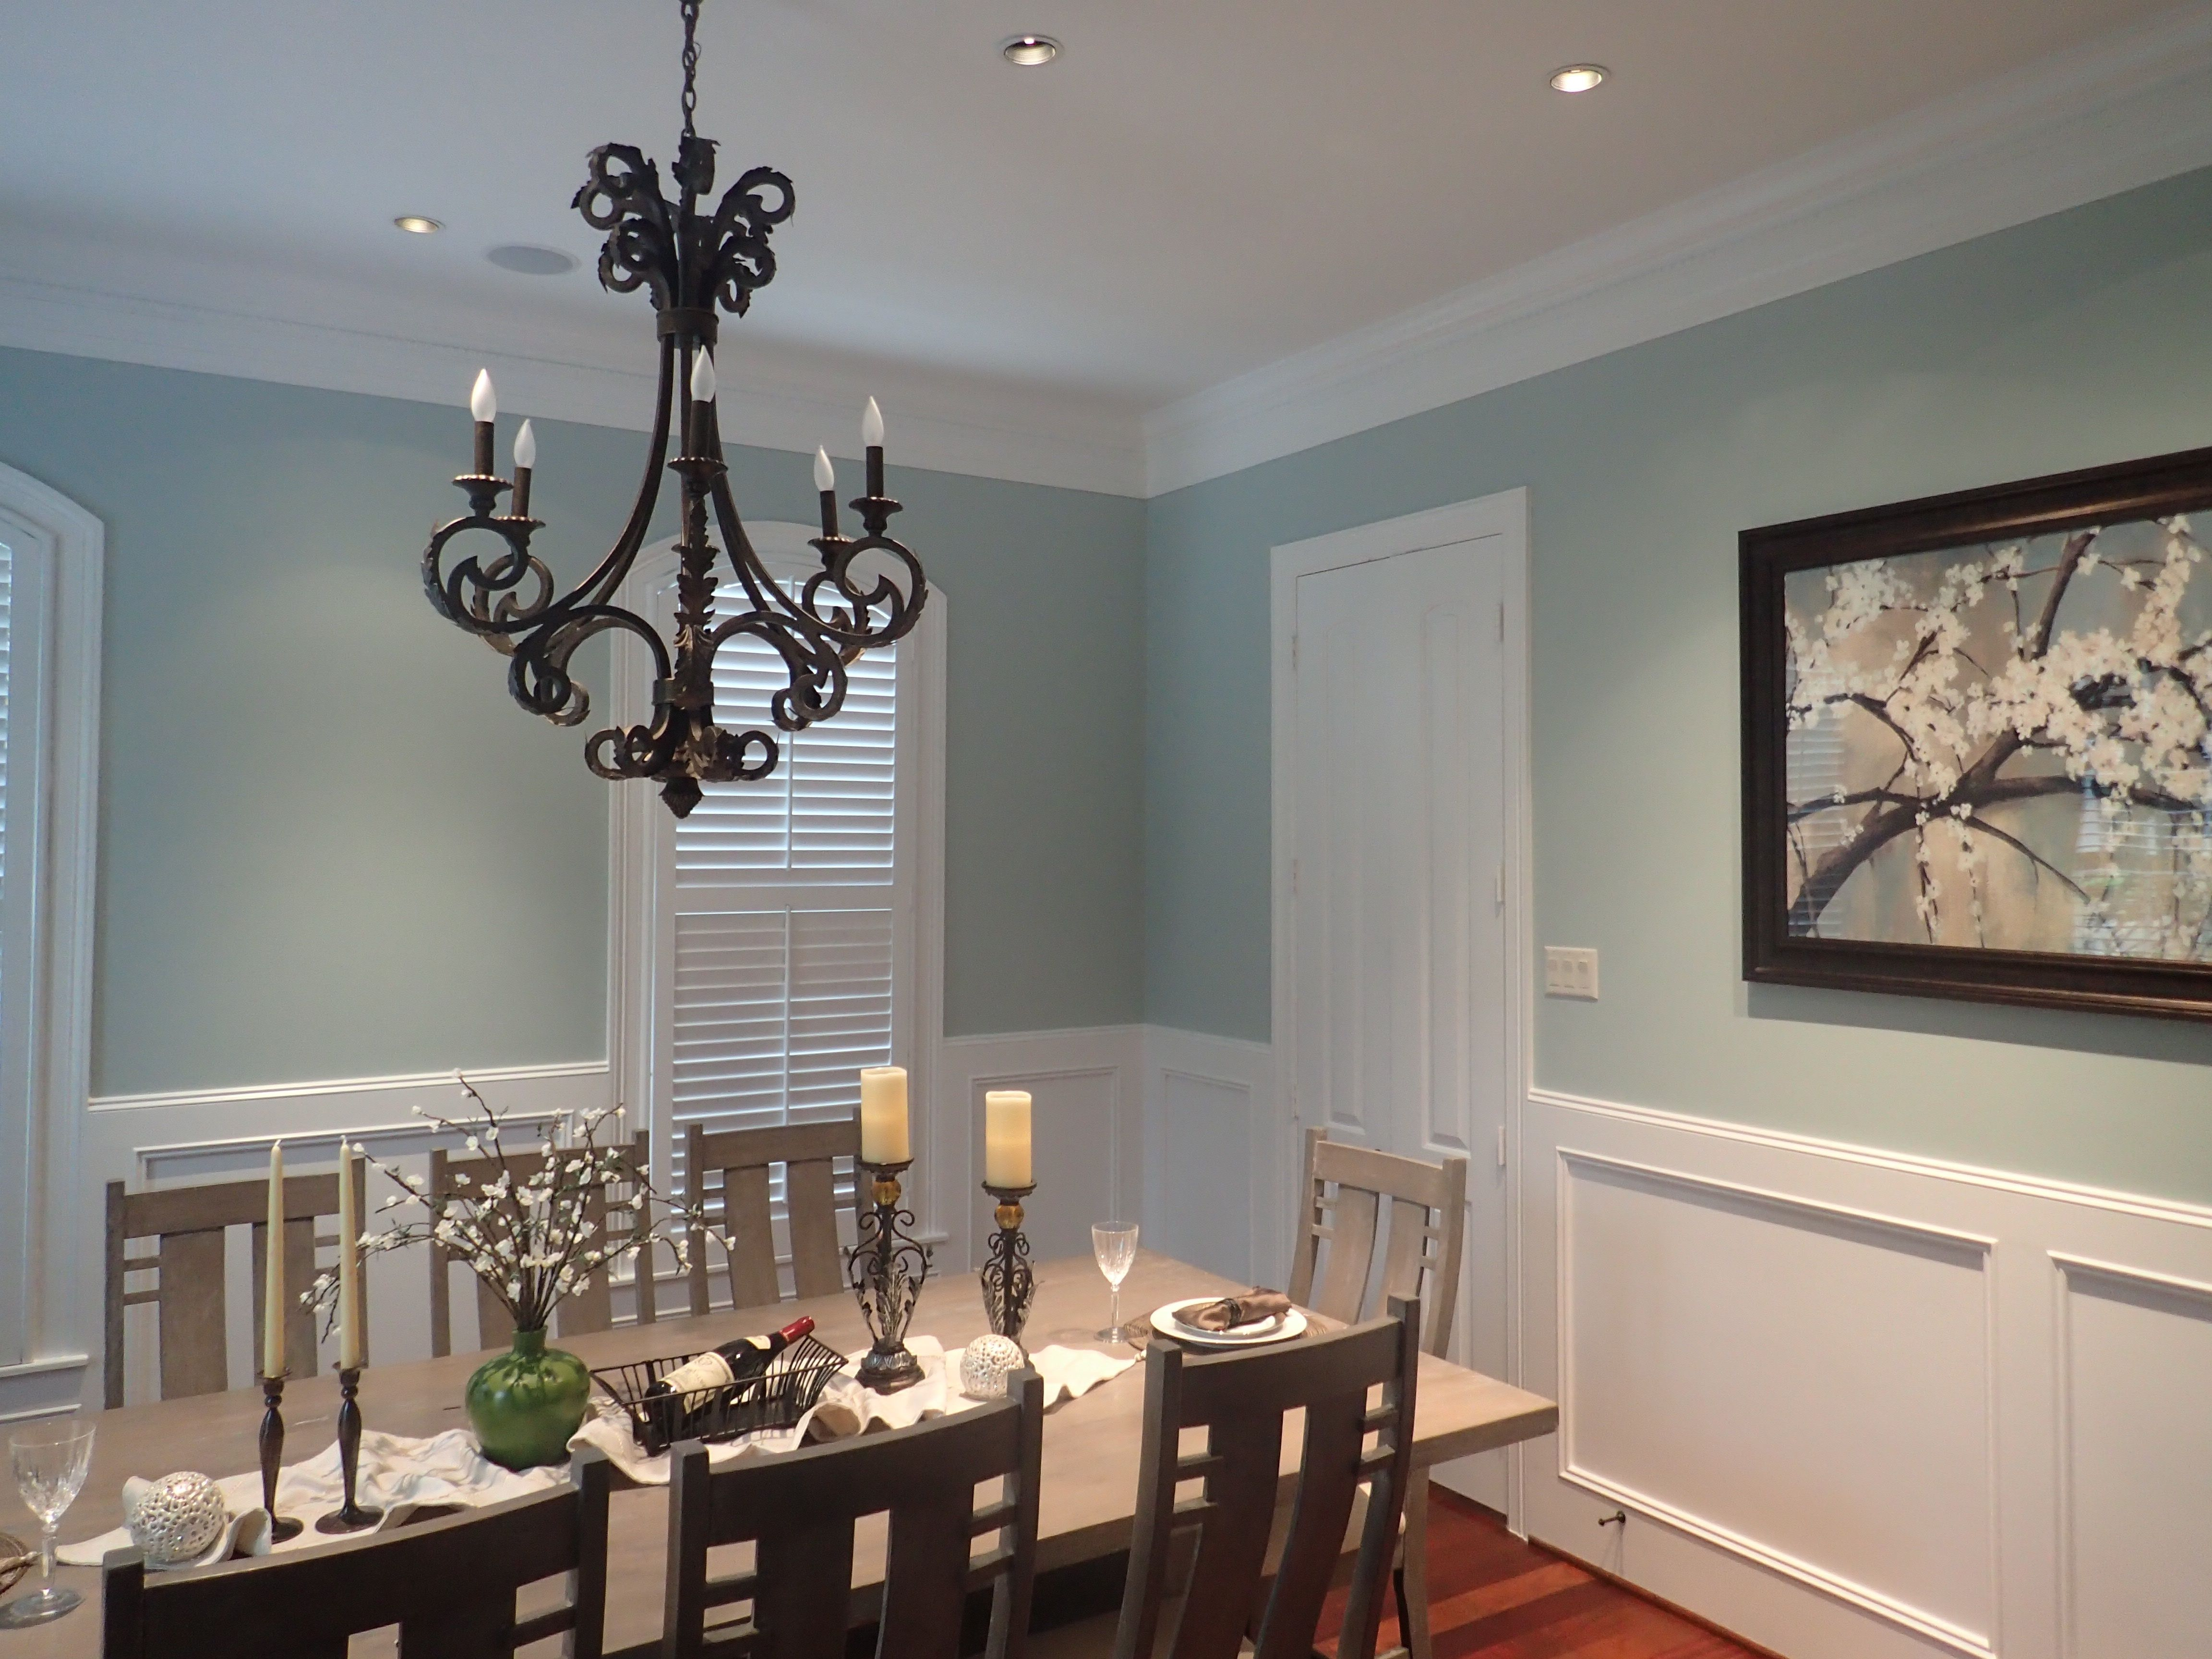 Dining Room Sherwin Williams Copen Blue (With images